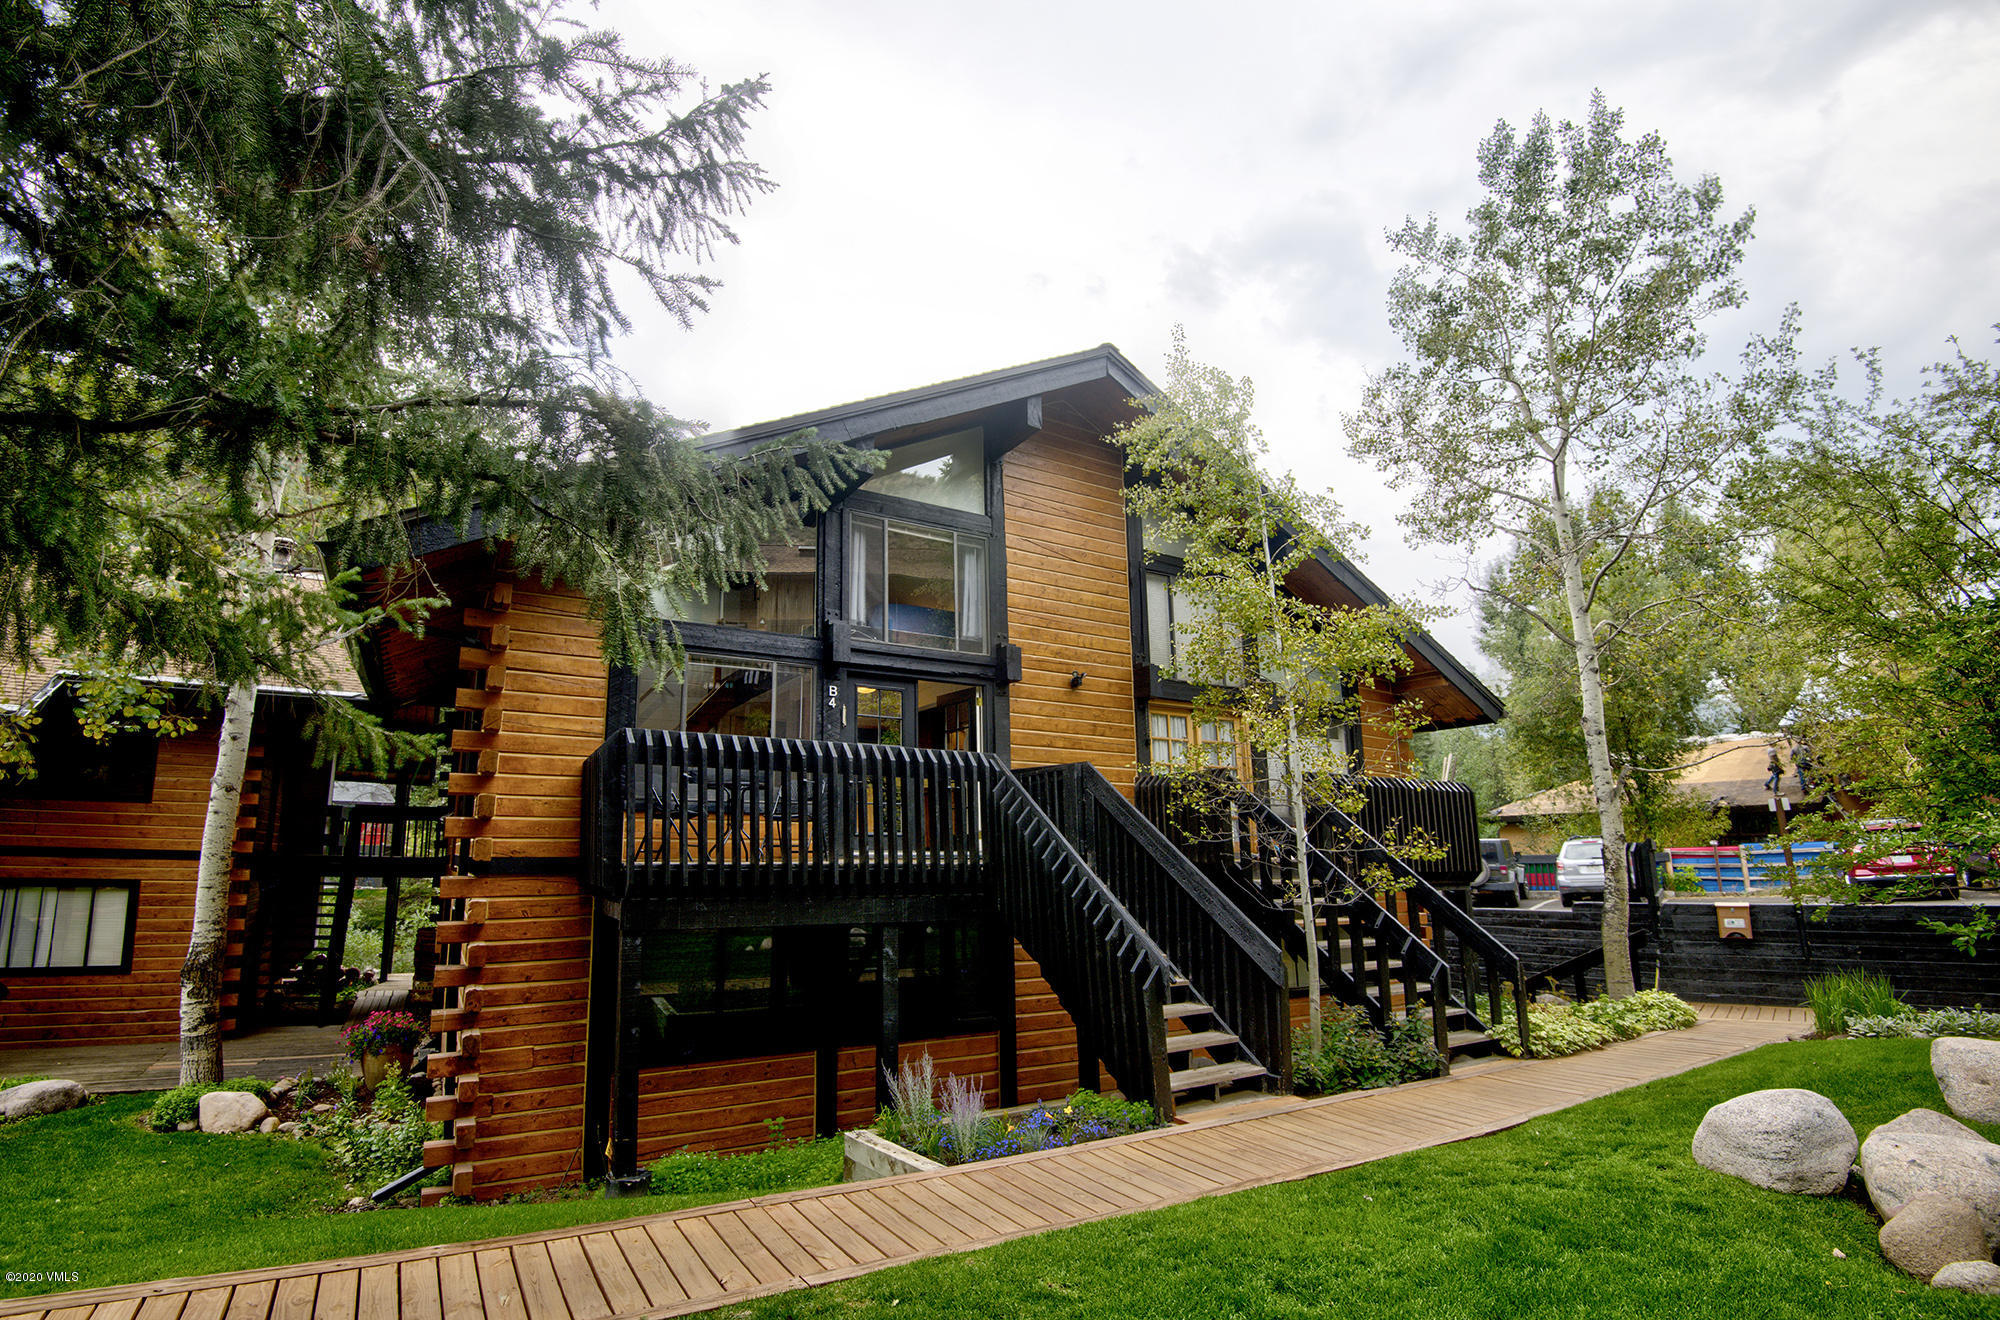 Super cute, remodeled sunny 2 bedroom 2 bathroom condo in popular Intermountain. Newly furnished with fresh paint, contemporary accents, vaulted ceilings, wood floors, granite, sky lights and updated bathrooms.   HOA dues include heat, internet and cable plus just steps from the free town of Vail bus stop. Proven strong rental producer to offset your sweet mountain retreat or enjoy as a primary home. Ideal setting next to the Gore Creek, with no I 70 impact, yet only a short bus ride away to hit the slopes or cruise the village for entertainment, dining and shopping.